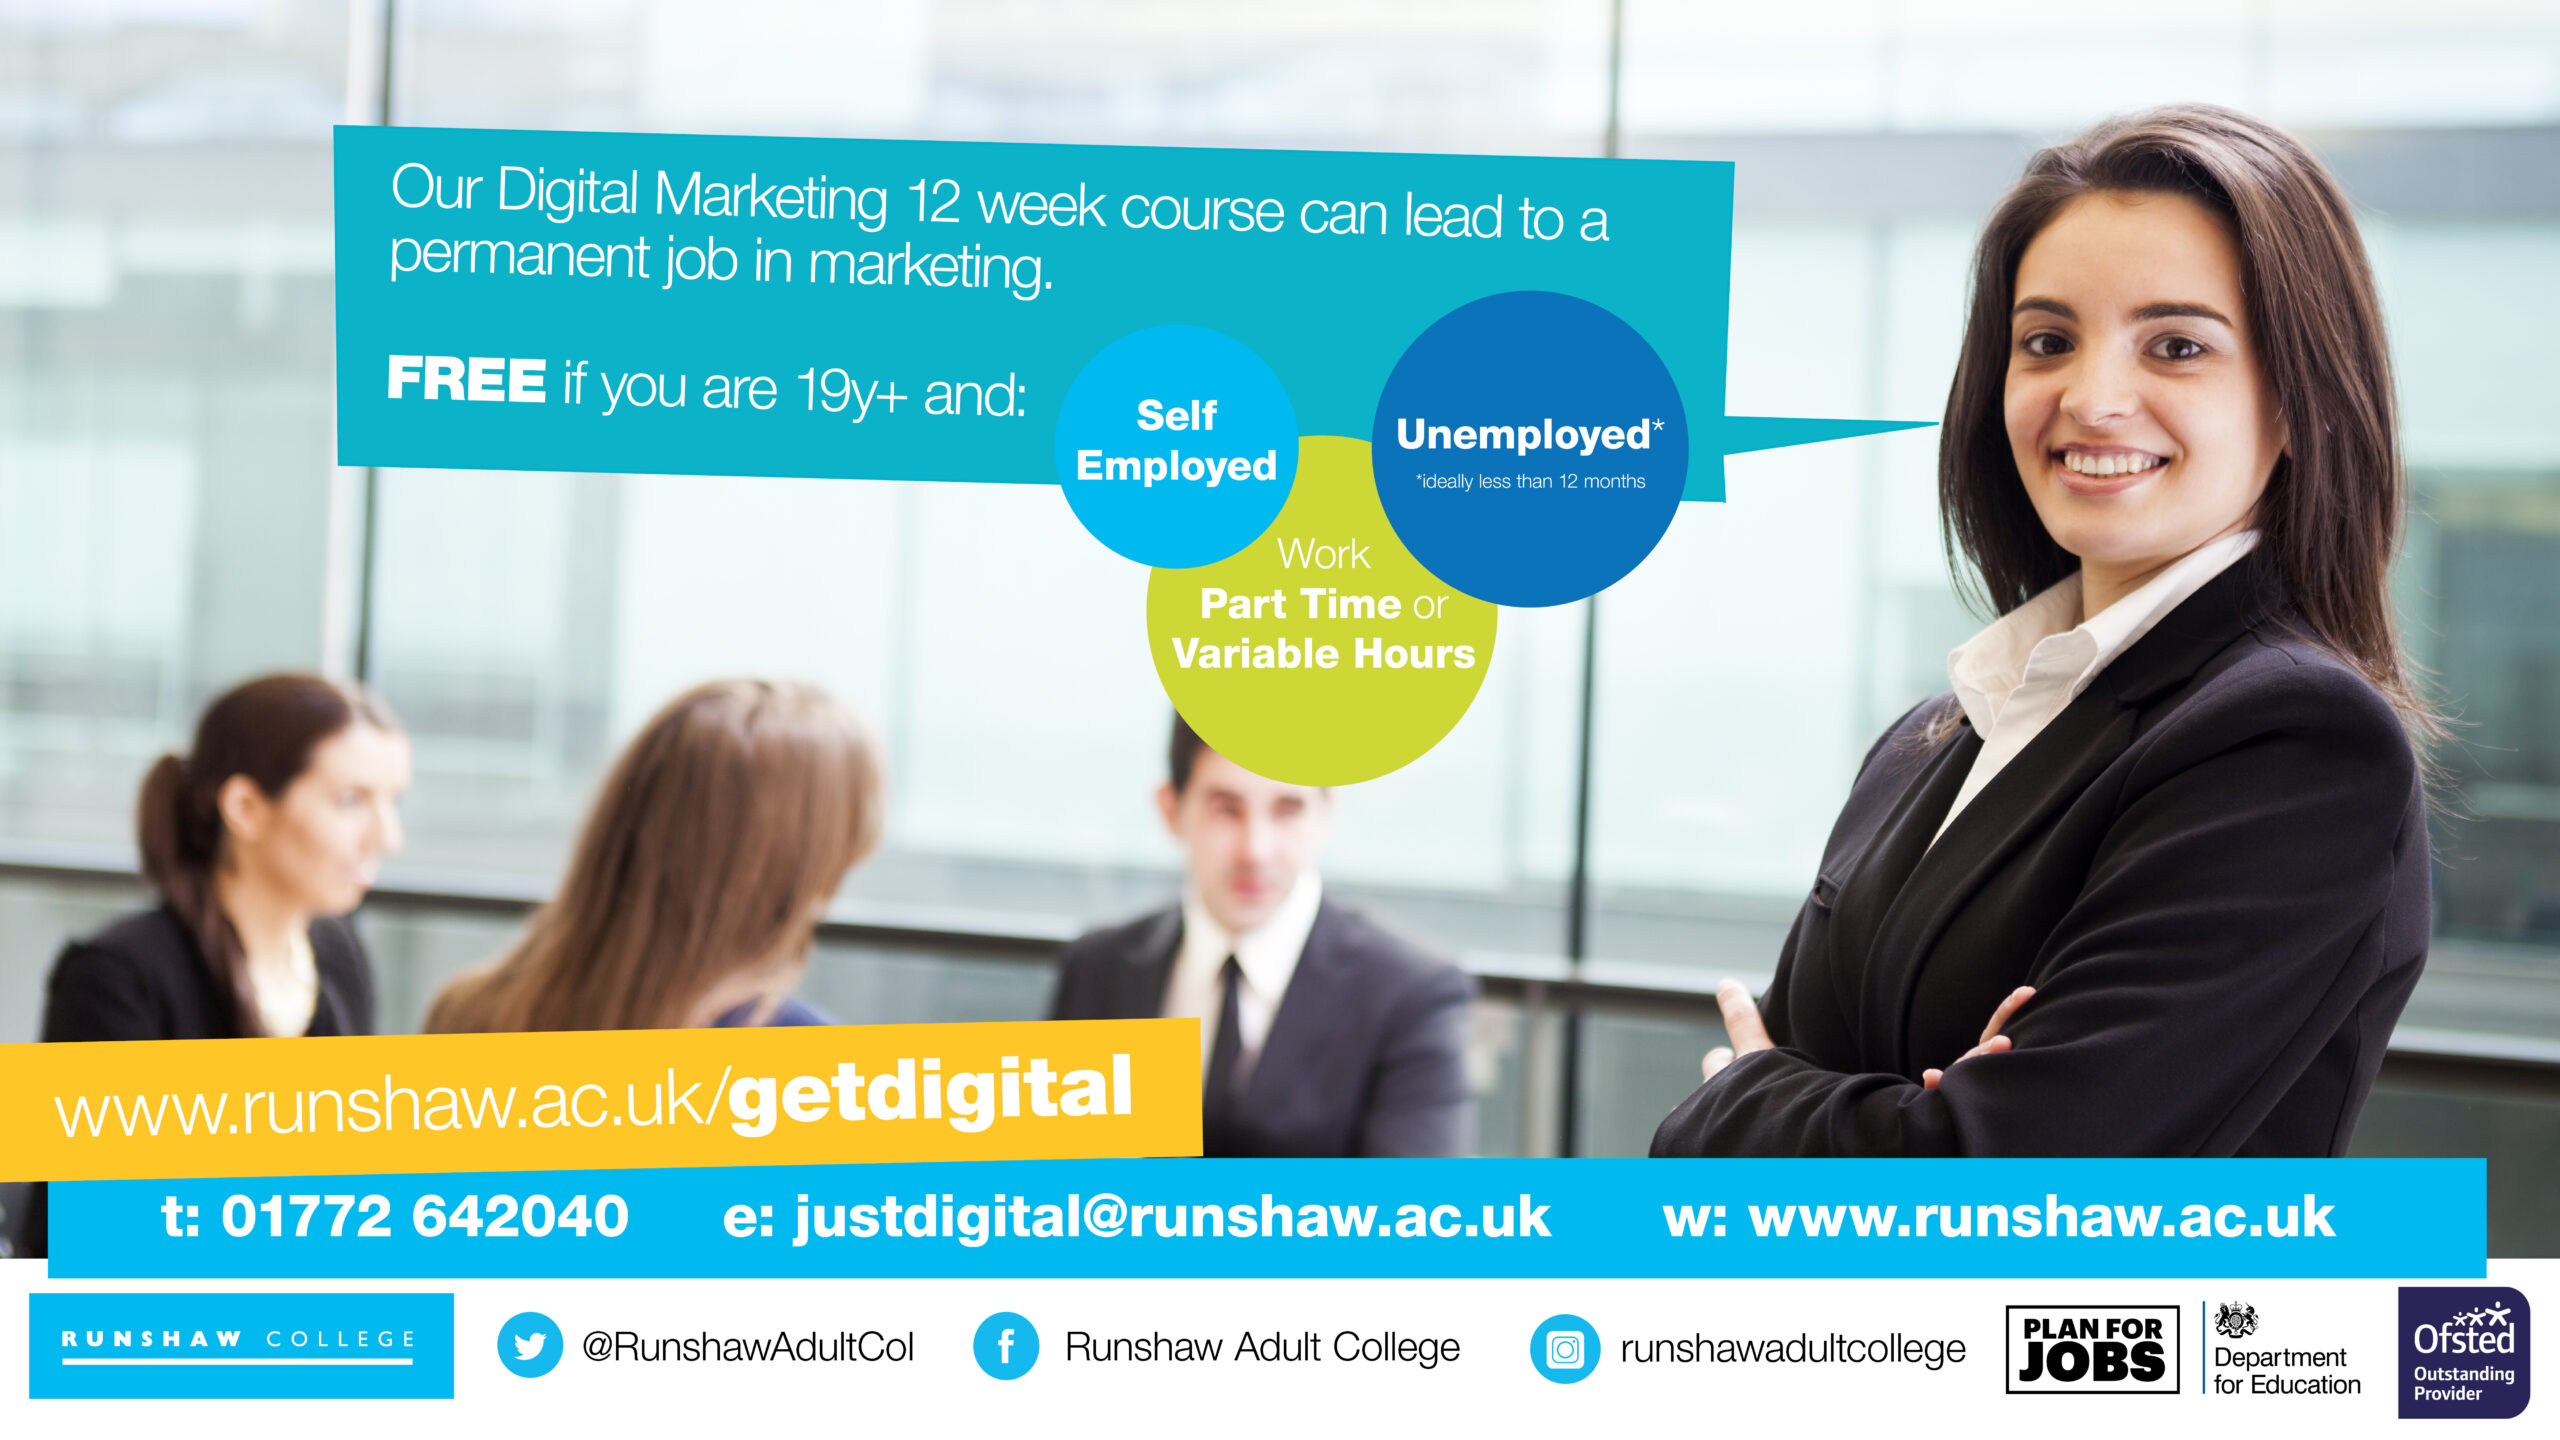 Our Digital Marketing 12 week course can lead to a permanent job in Marketing